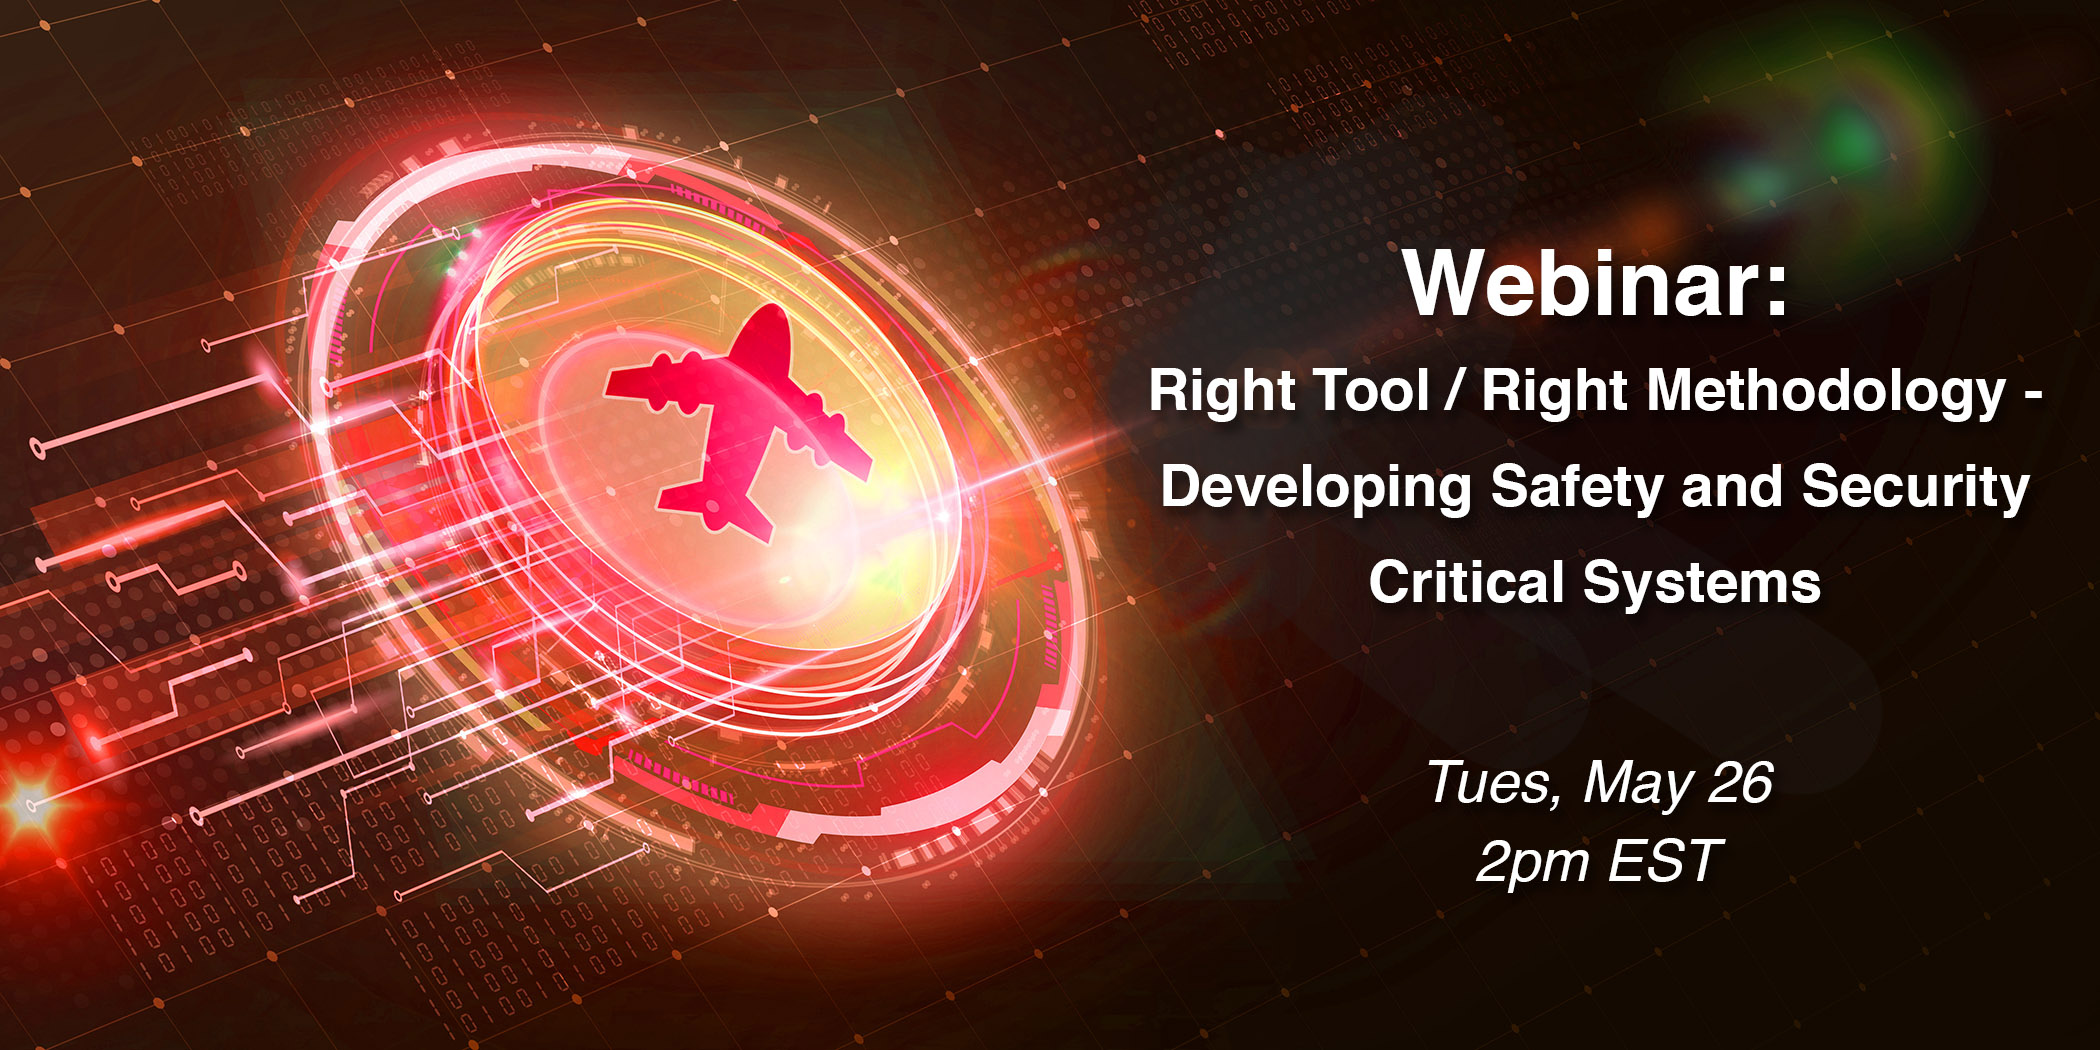 Webinar Recording - Right Tool, Right Methodology: Developing Safety and Security Critical Systems (with AFuzion)